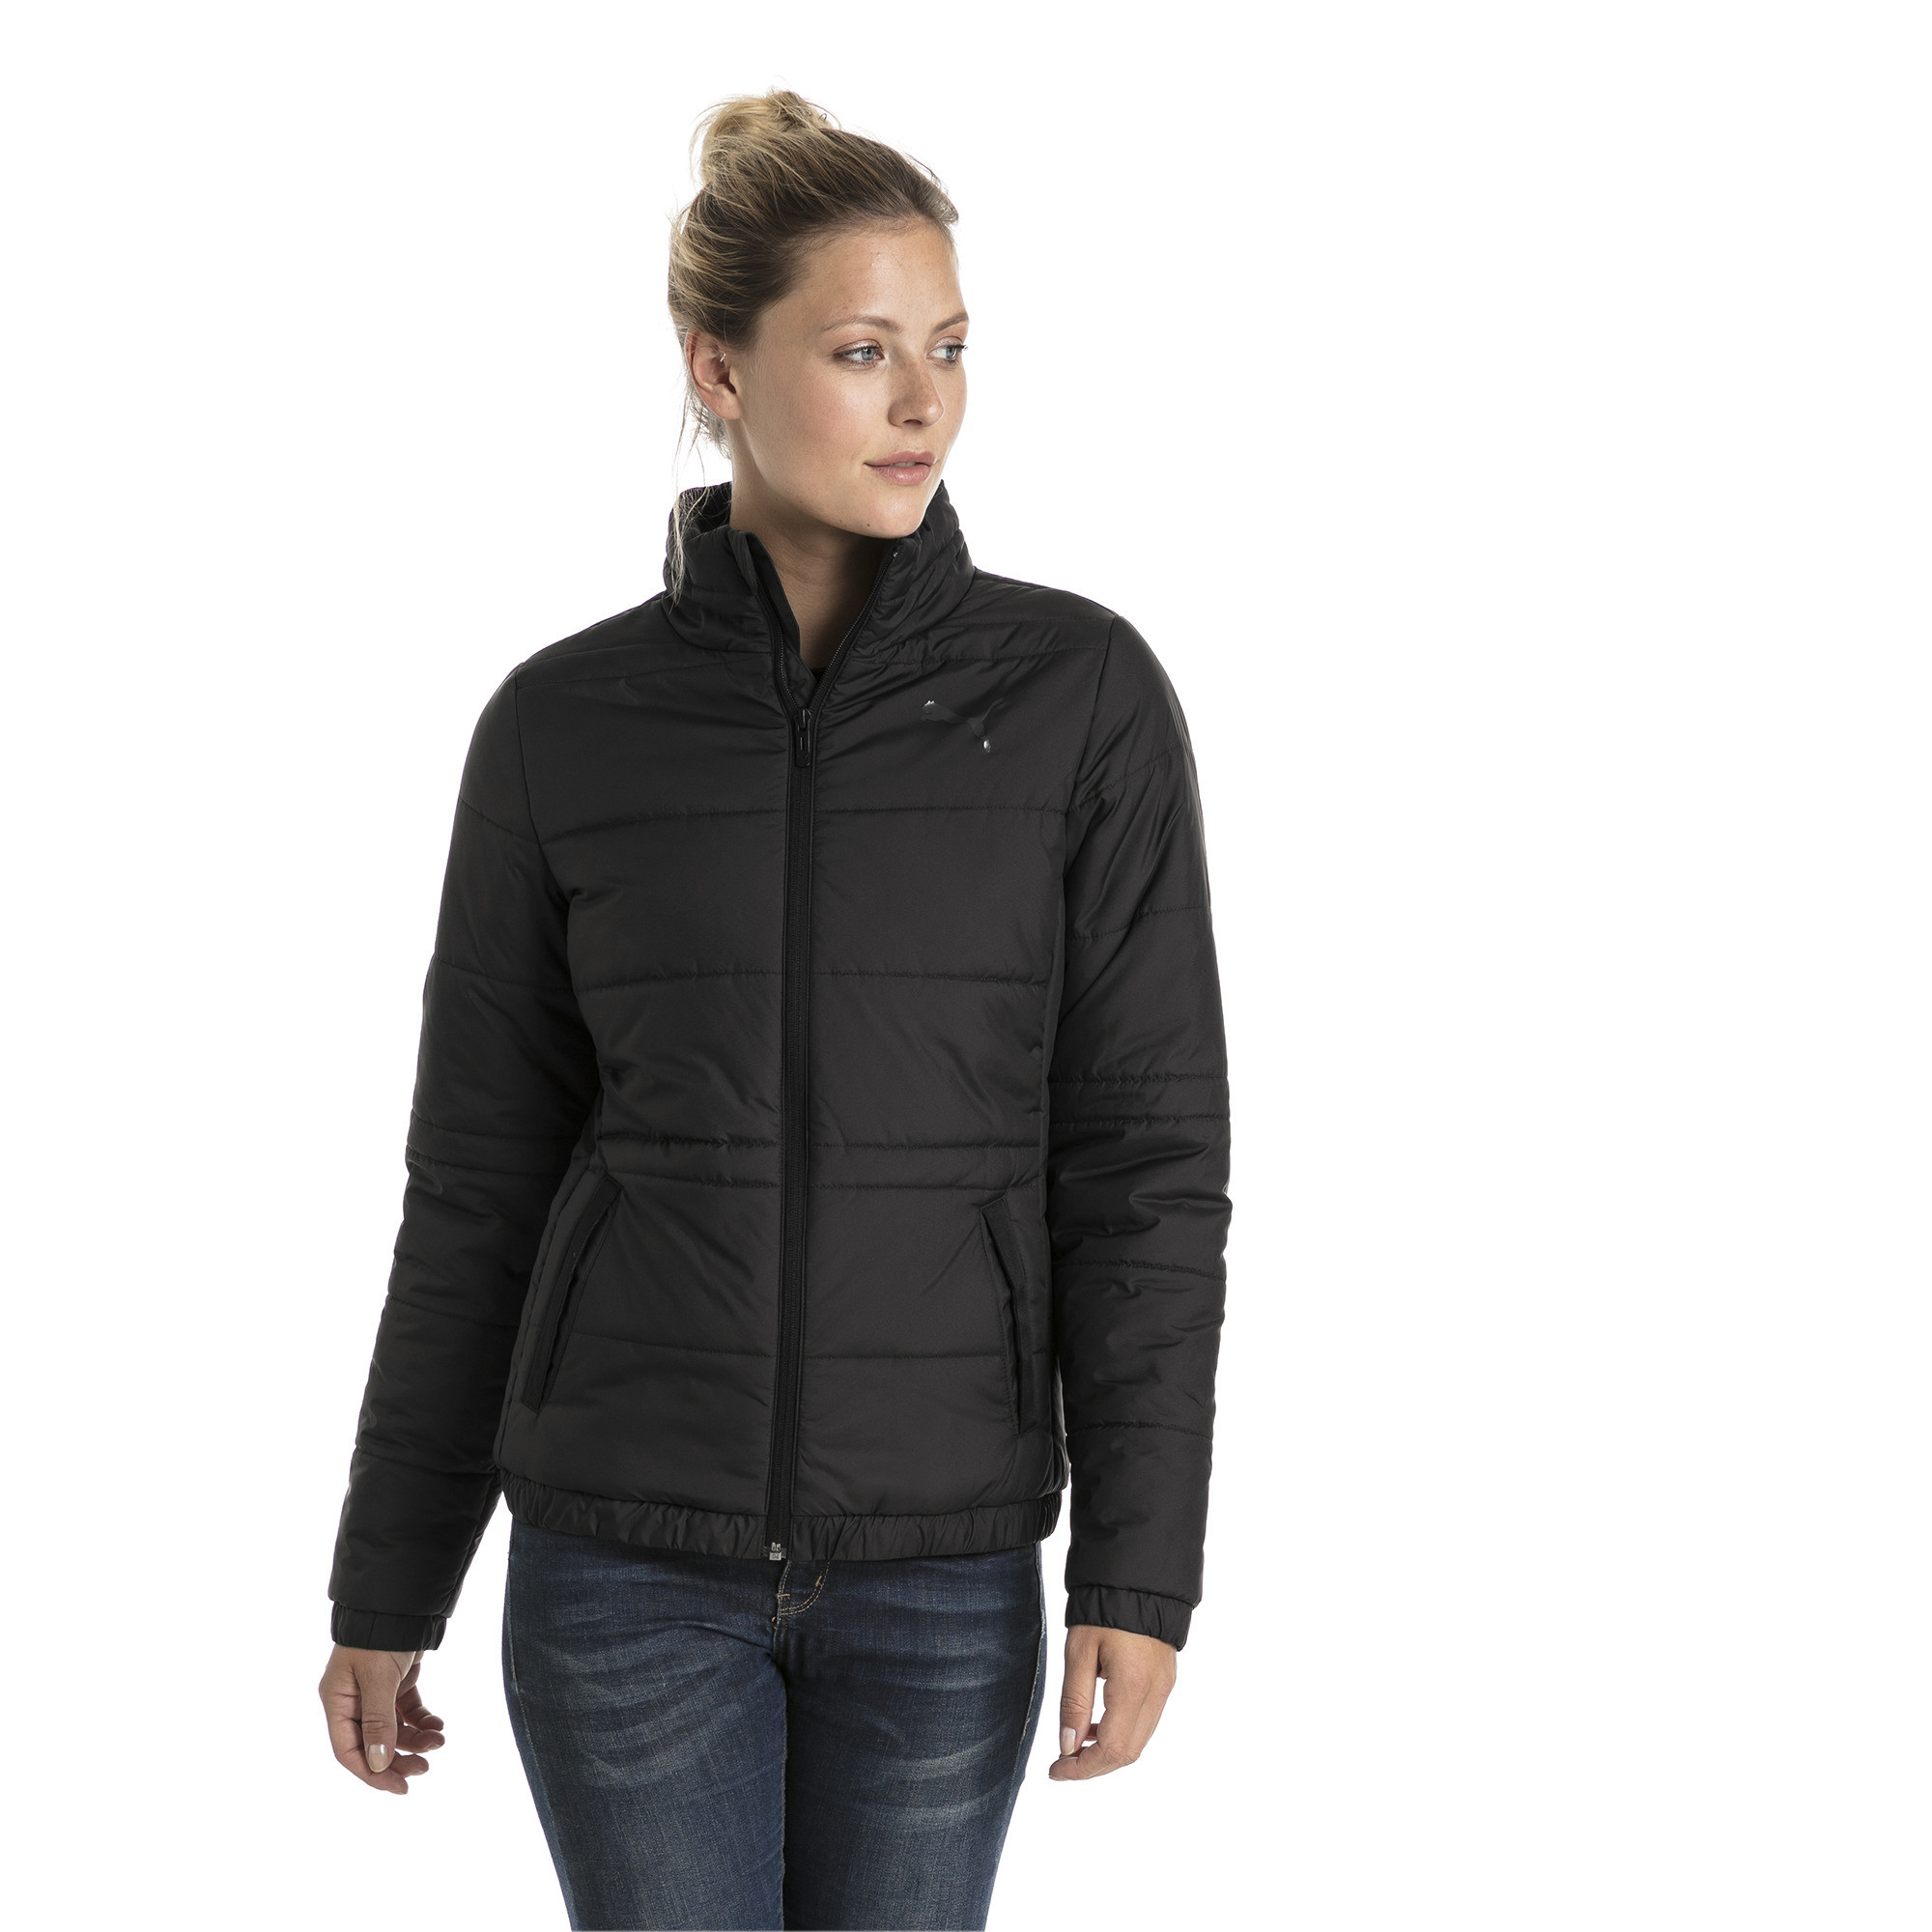 af91ba07e64 Essential Women's Padded Jacket | 10 - Black | Puma